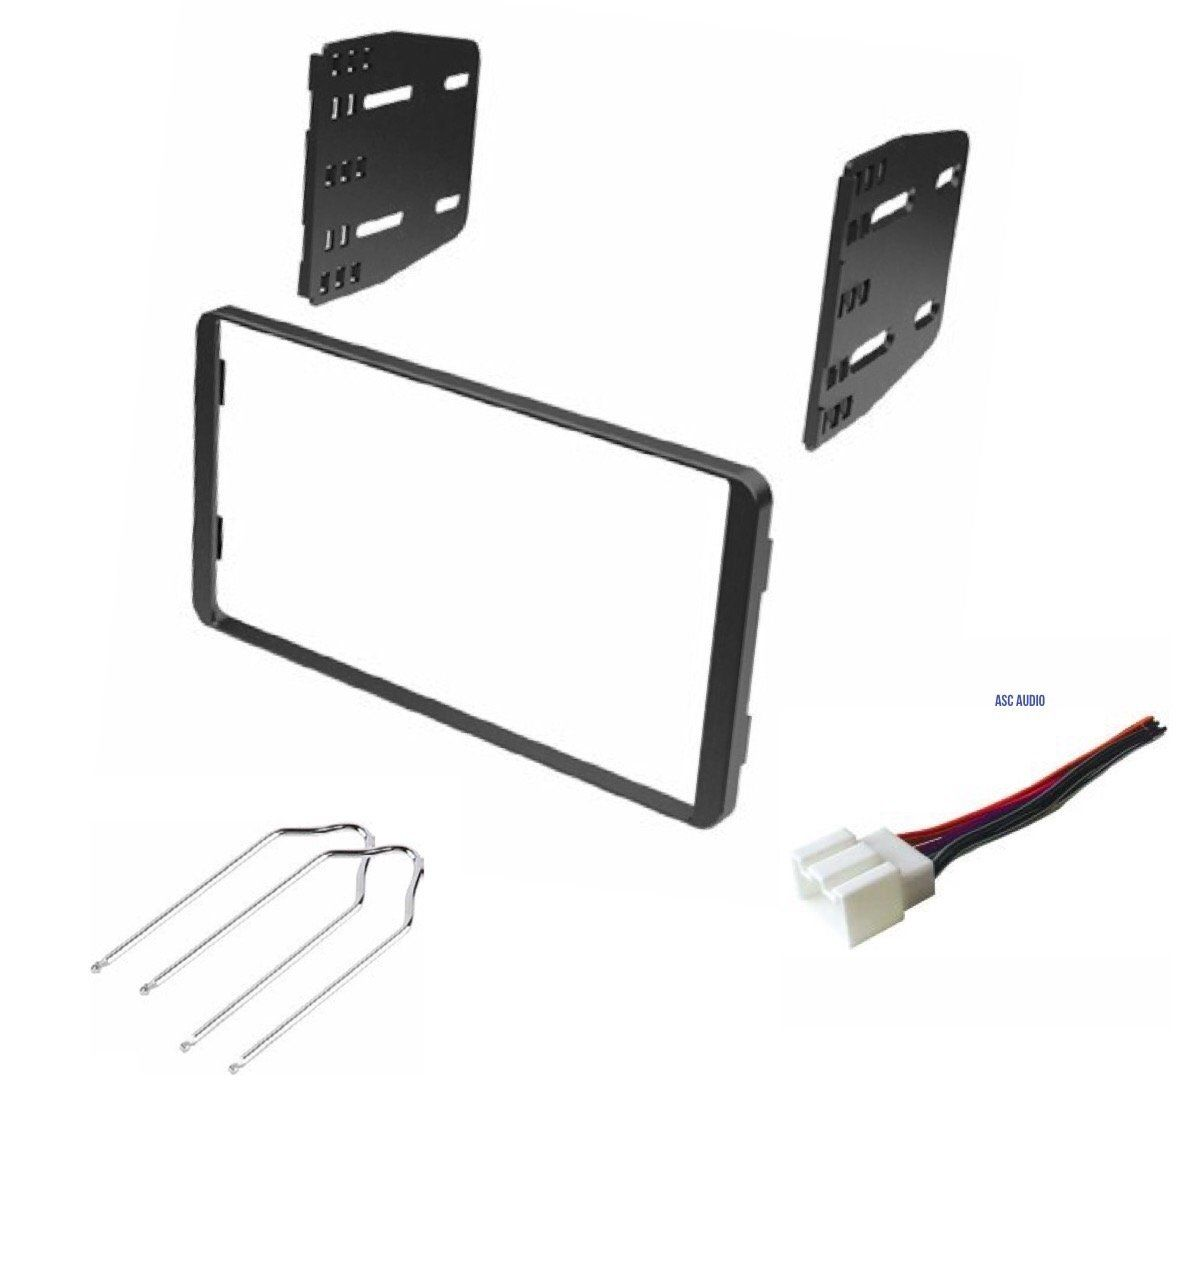 medium resolution of car stereo dash kit wire harness and radio tool for installing a double din radio for 1998 2008 ford econoline 1999 2003 ford f 150 1999 2004 ford